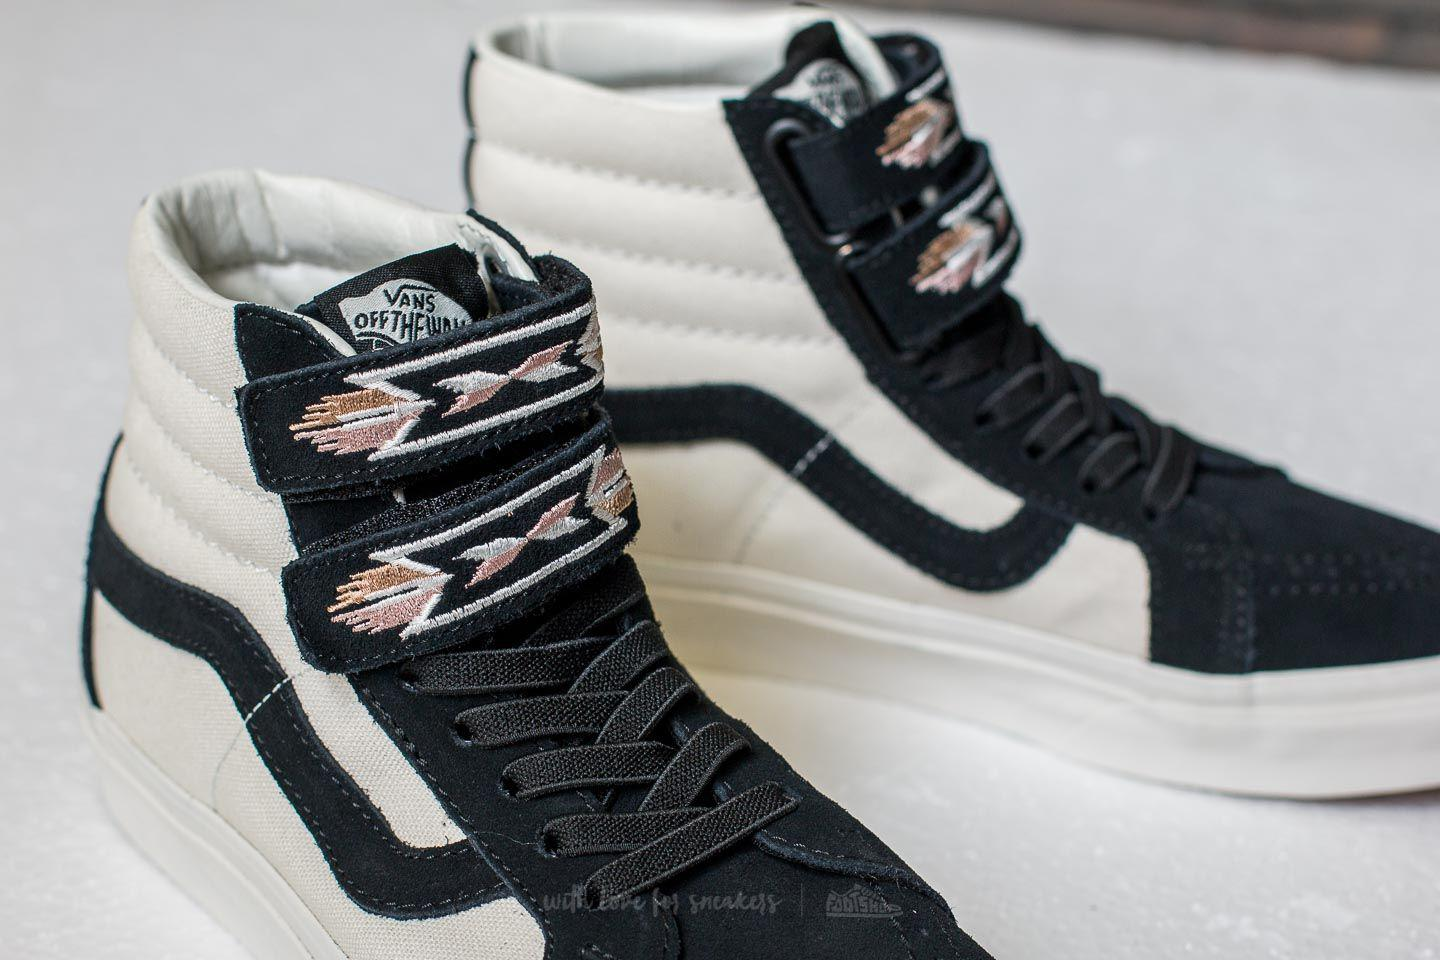 Lyst - Vans Sk8-hi Reissue V (native Embroidery) Black  Marshmallow ... 7315daf00